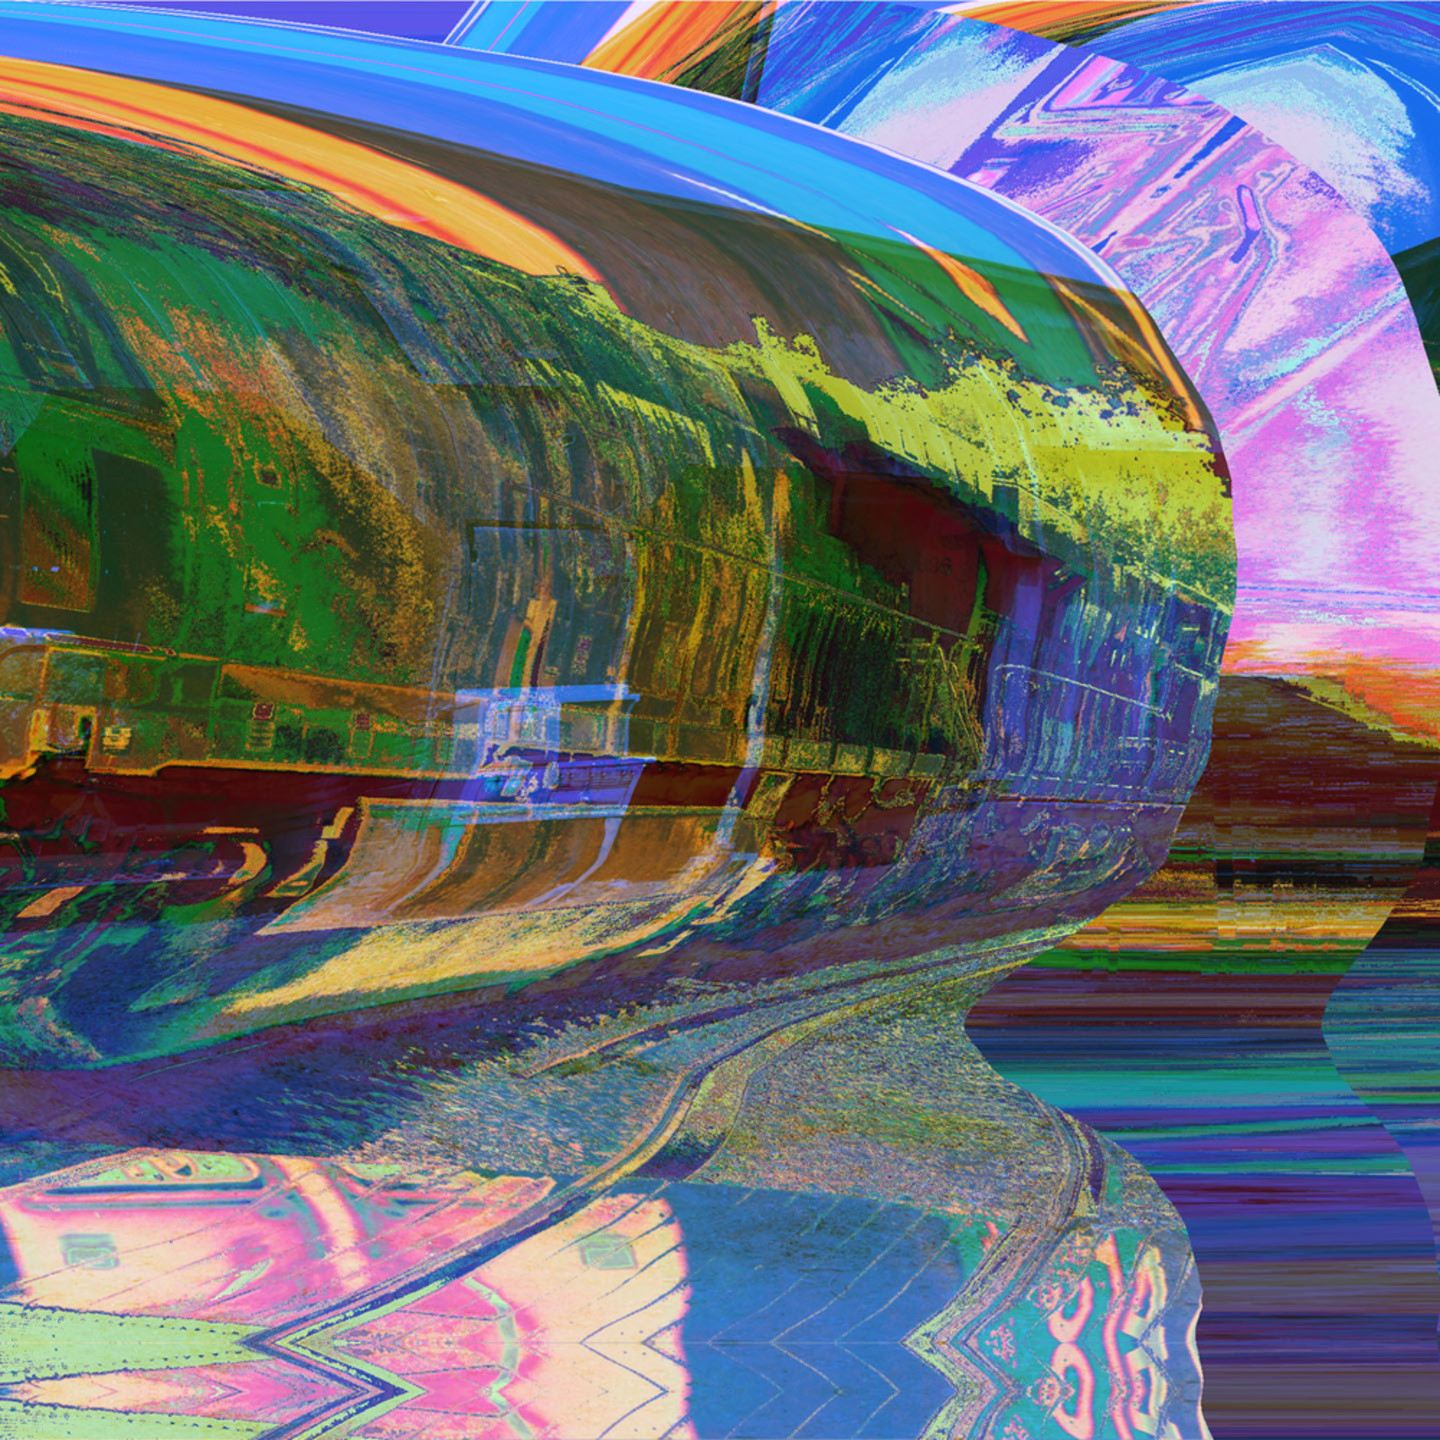 Locomotive in a bottle ii xbufxe